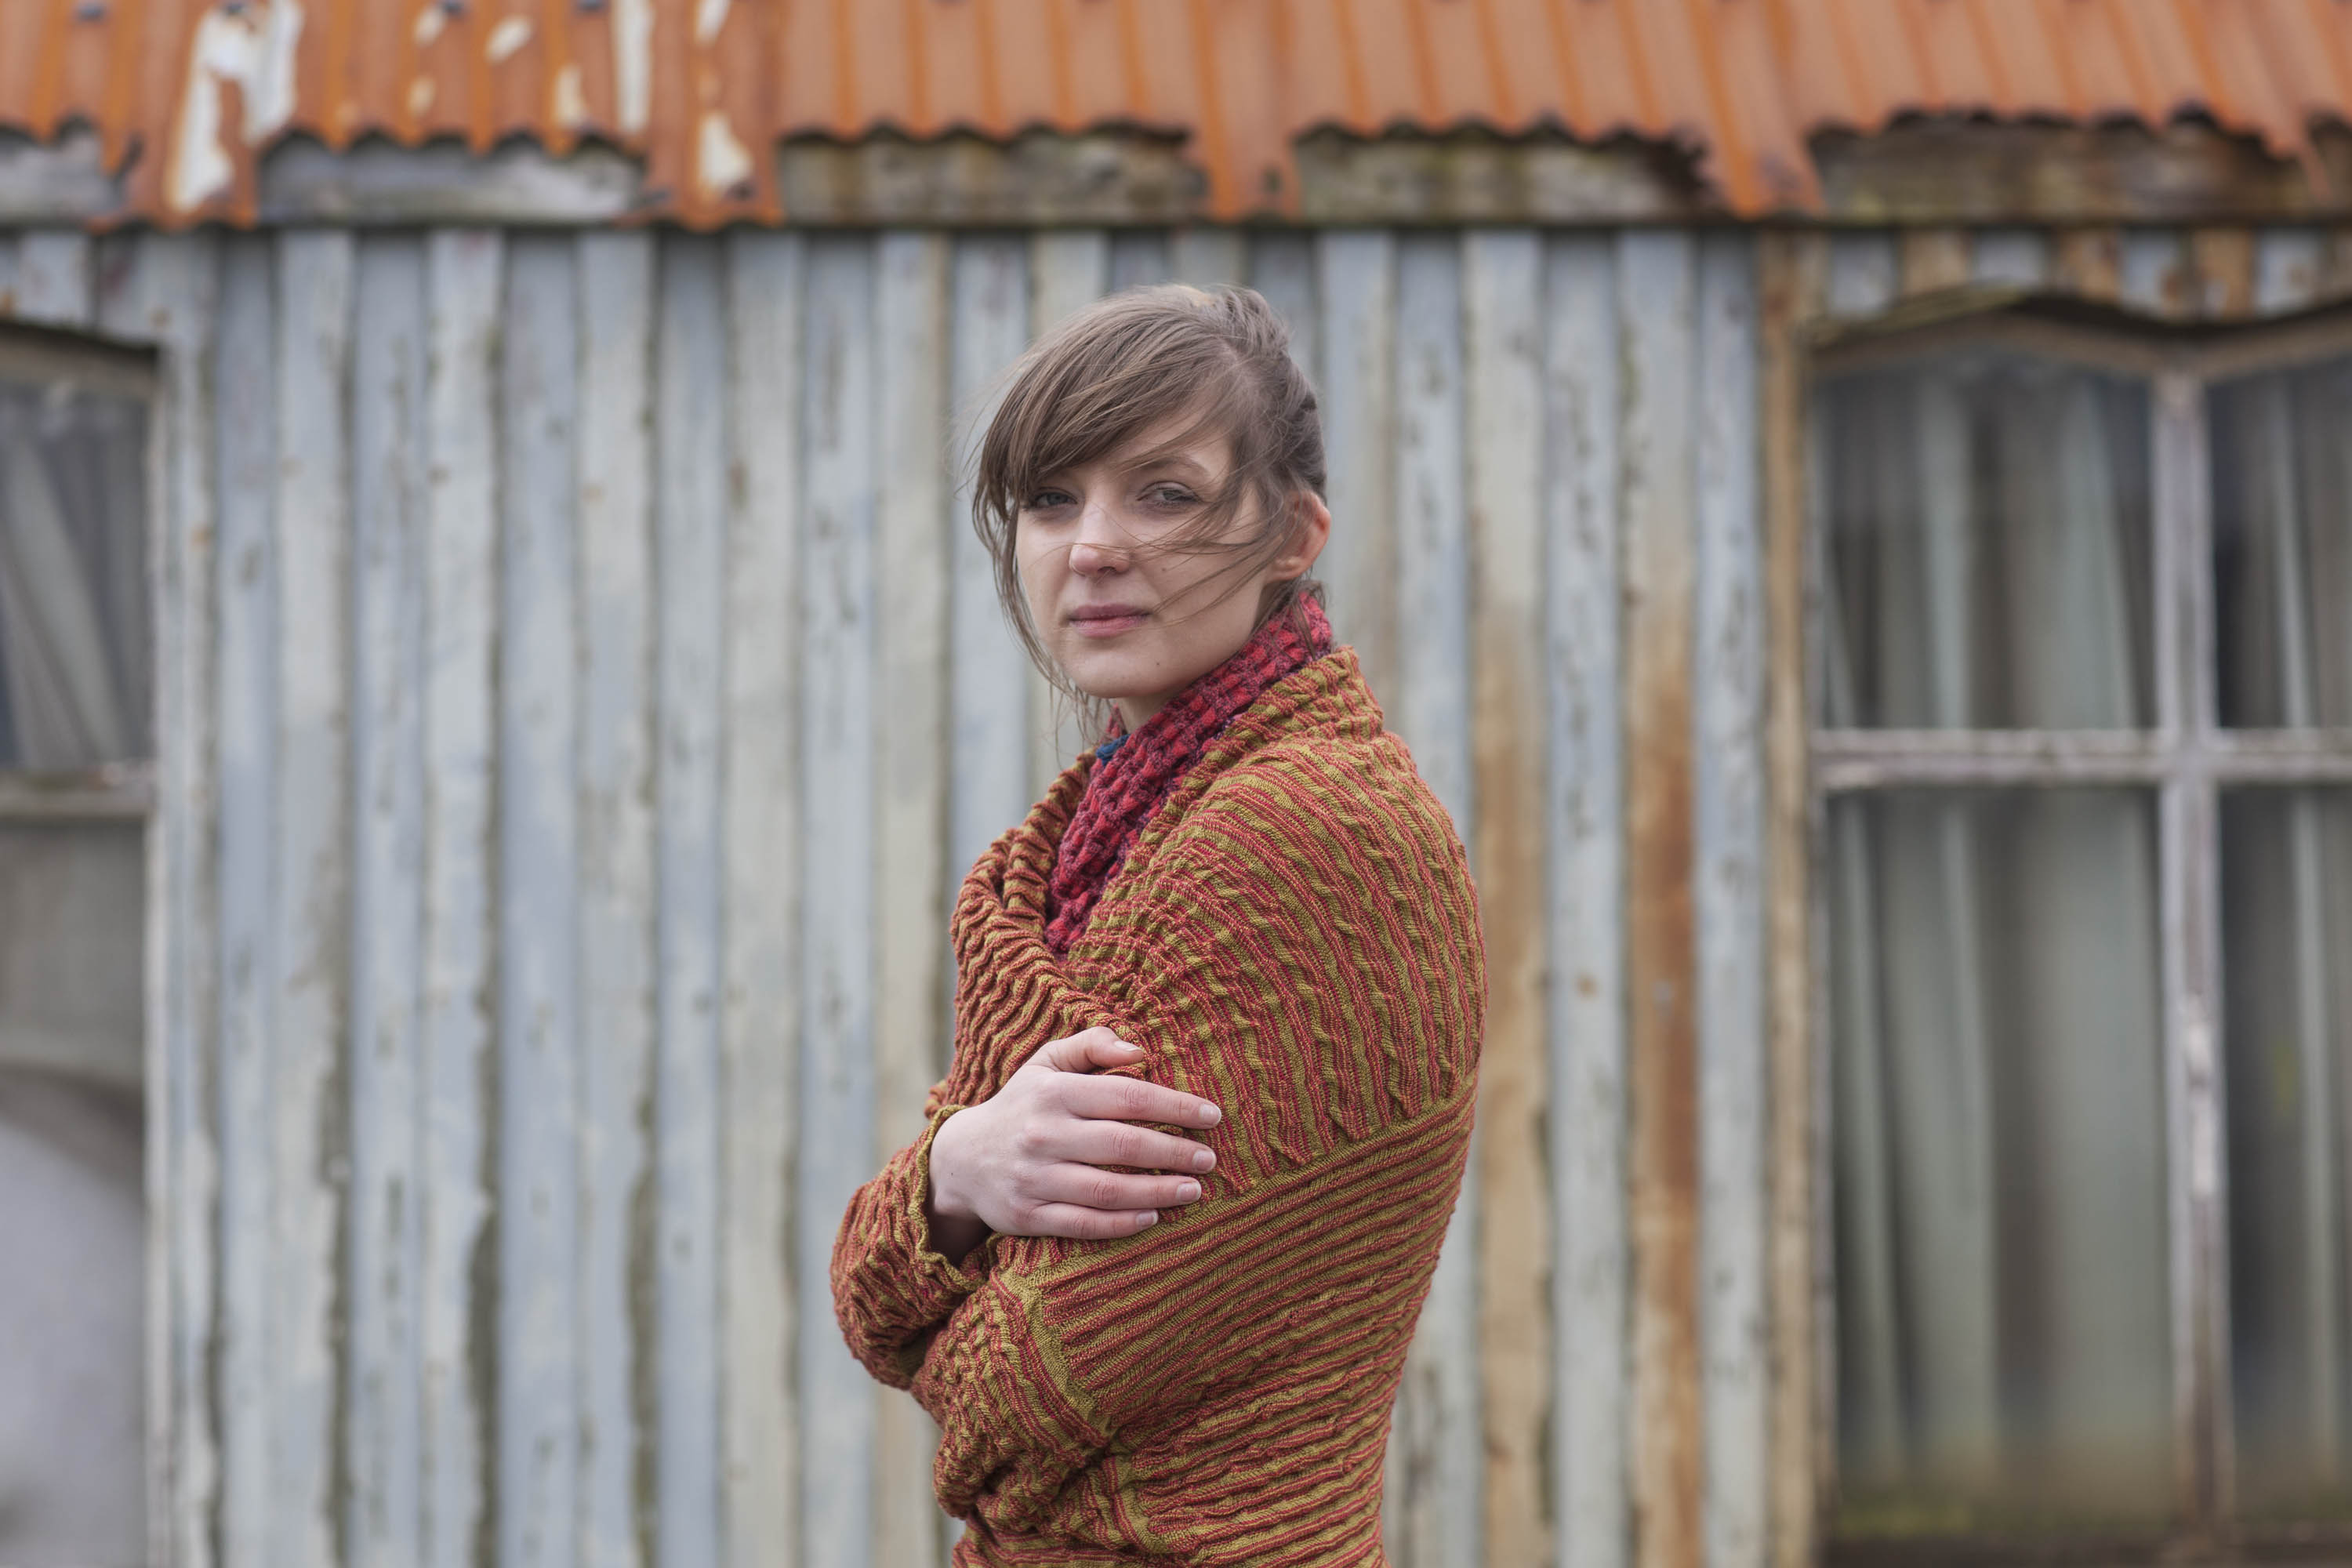 Contemporary Shetland knitwear in Hoswick, a model wears a rusty, textured knitted jacket with her arms wrapped round herself and her hair being blown in the wind